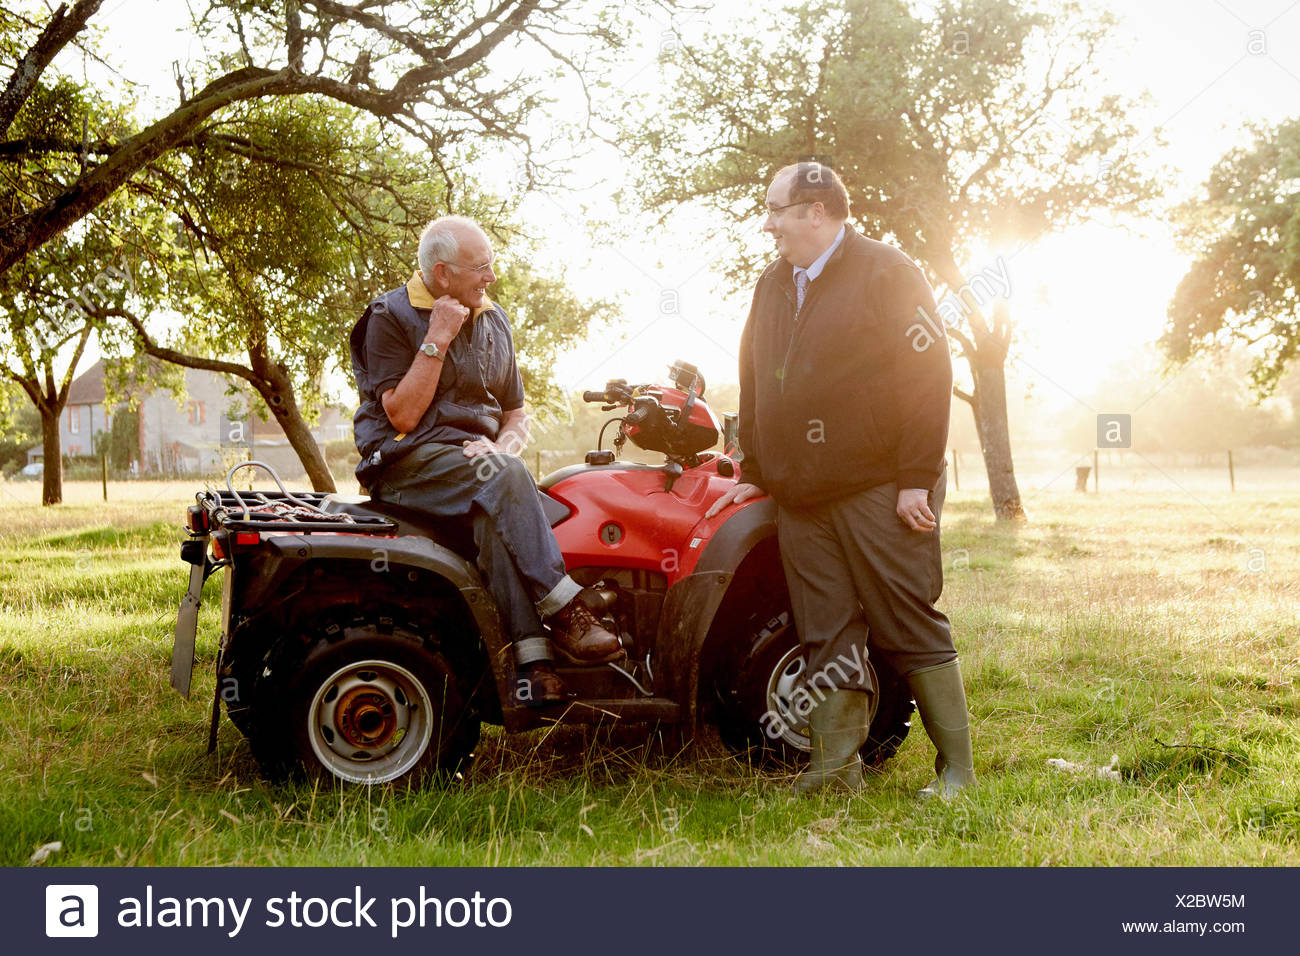 Two men, a farmer and a man with a clipboard, by a quadbike in an orchard. - Stock Image